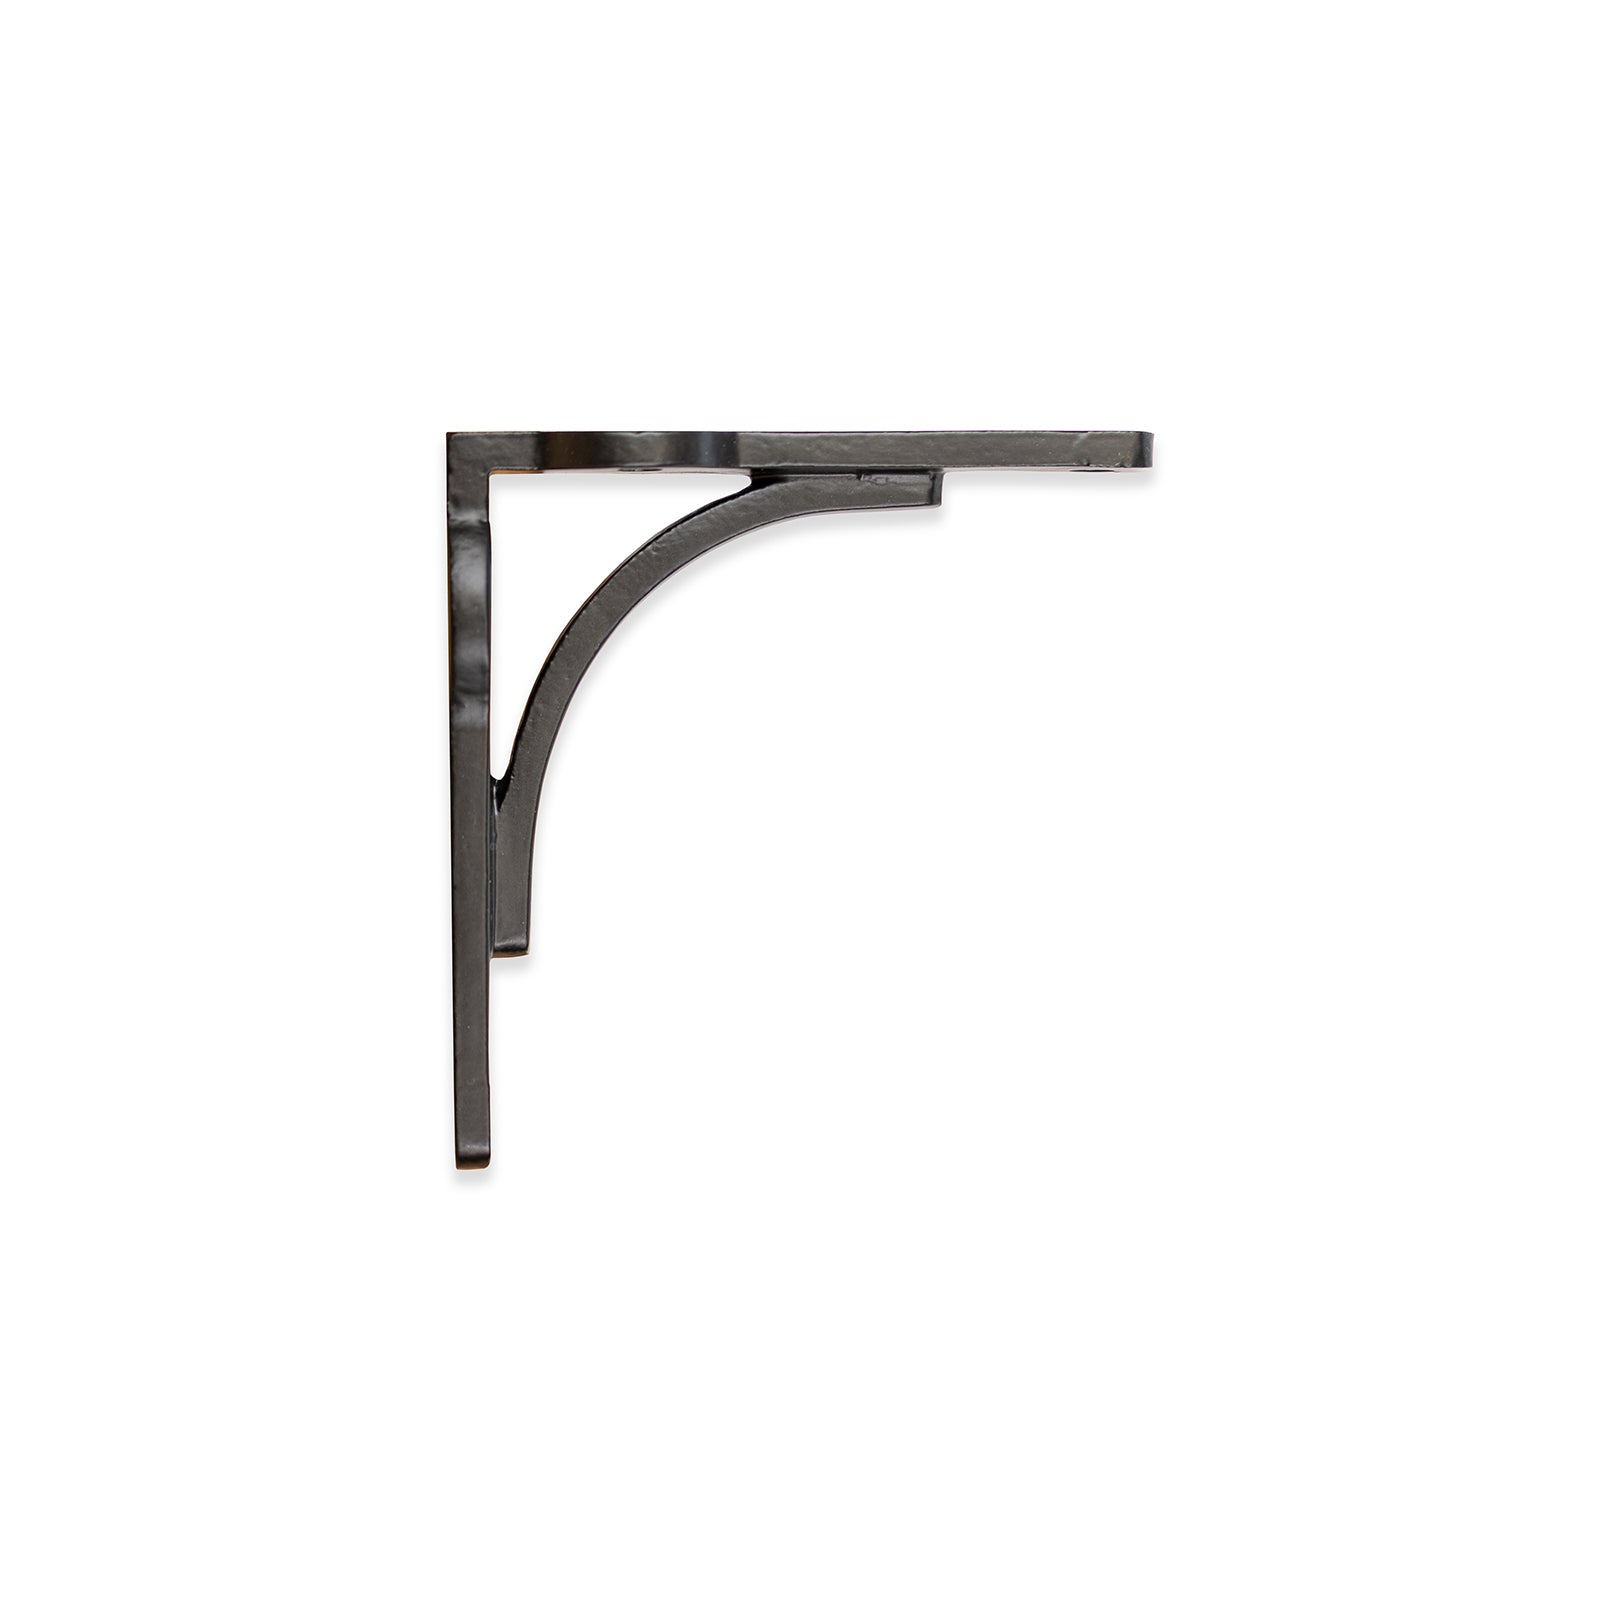 Classic Cast Iron Shelf Bracket in Black Finish